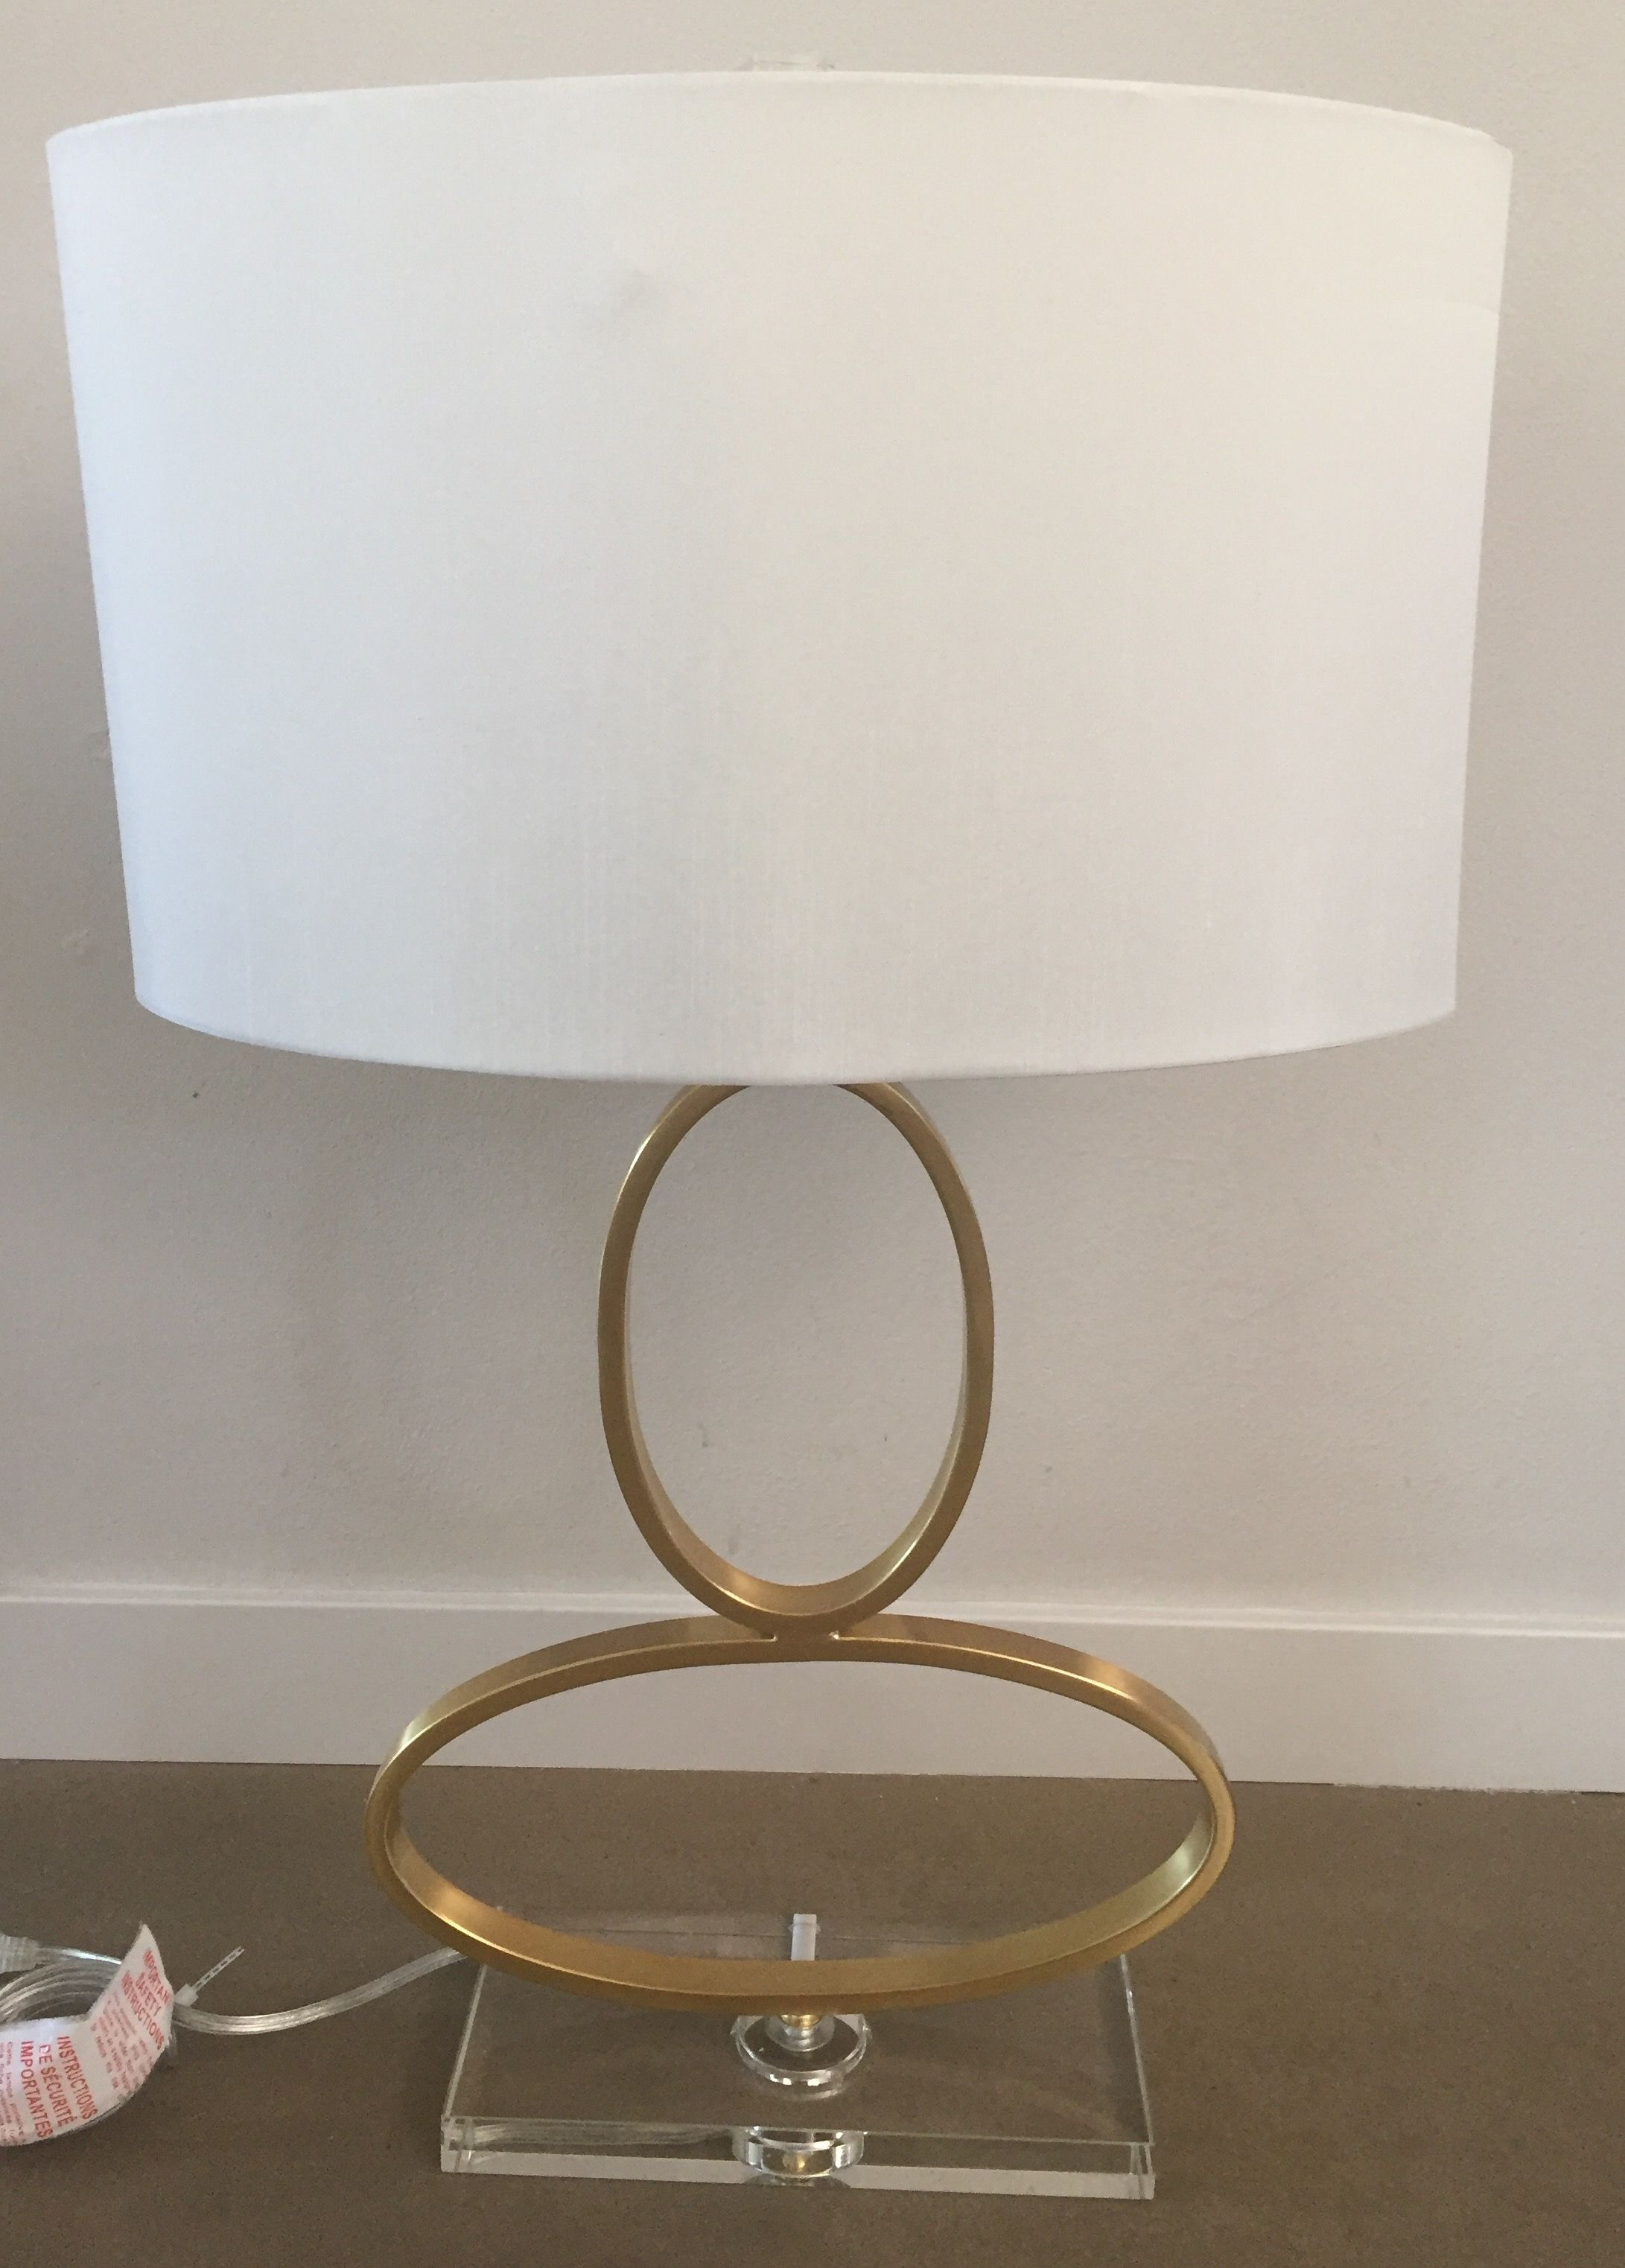 Drexel Heritage Gold Ovals Table Lamp Diablo Guest Room 2